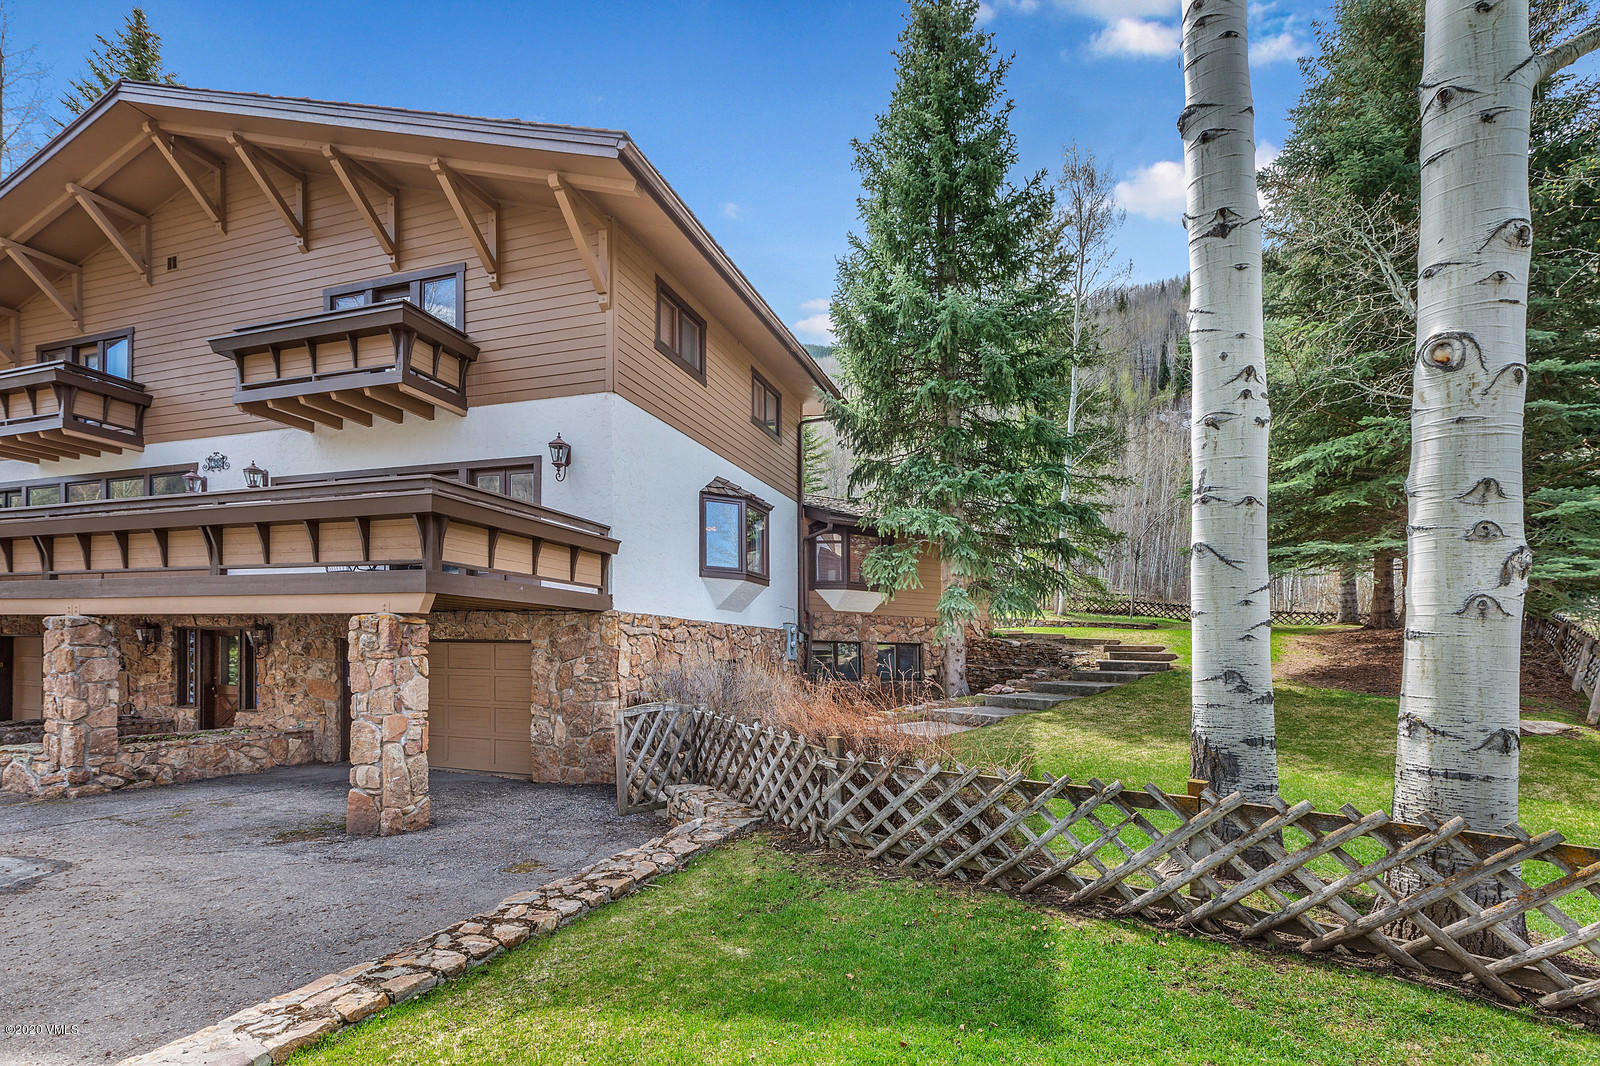 Endless opportunities await for this Vail Golf Course property! Backing up to the National Forest, the new owner can add additional square feet and take advantage of the fairly flat lot. Walk, bike or take the TOV bus into Vail Village.